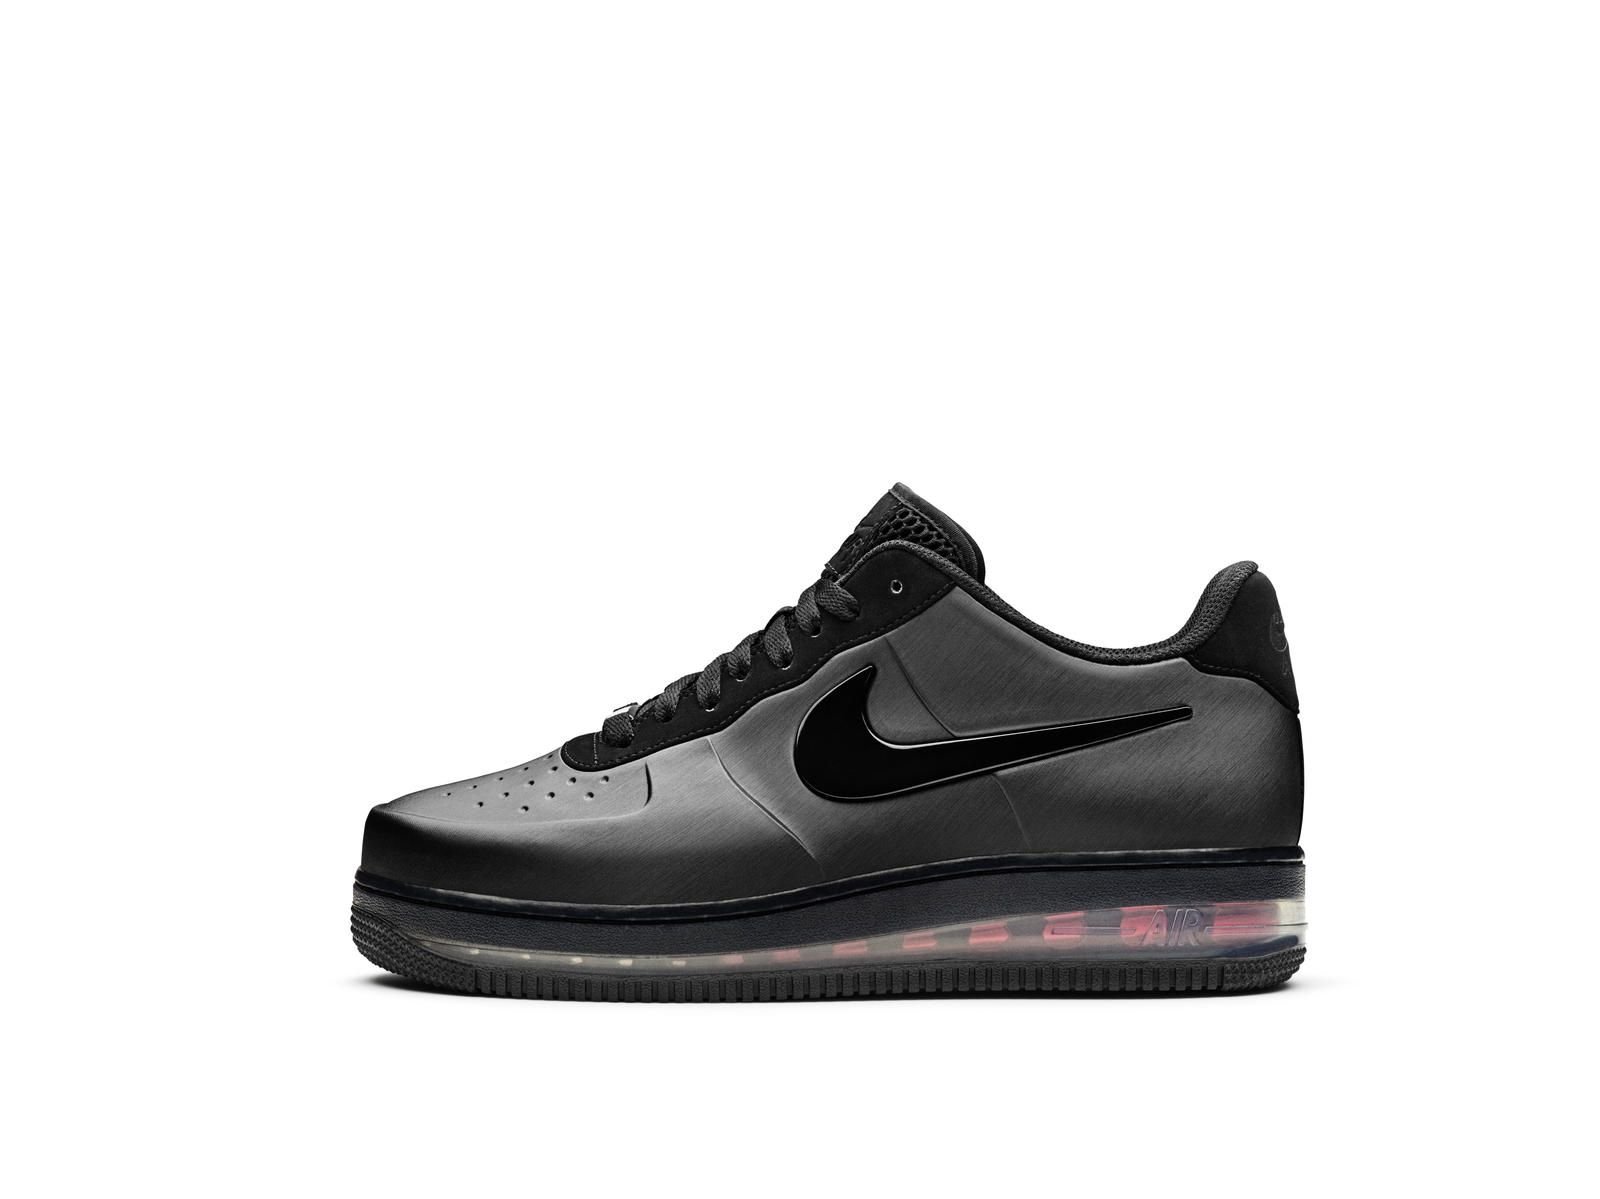 nike sportswear unveils special edition air force 1 nike. Black Bedroom Furniture Sets. Home Design Ideas